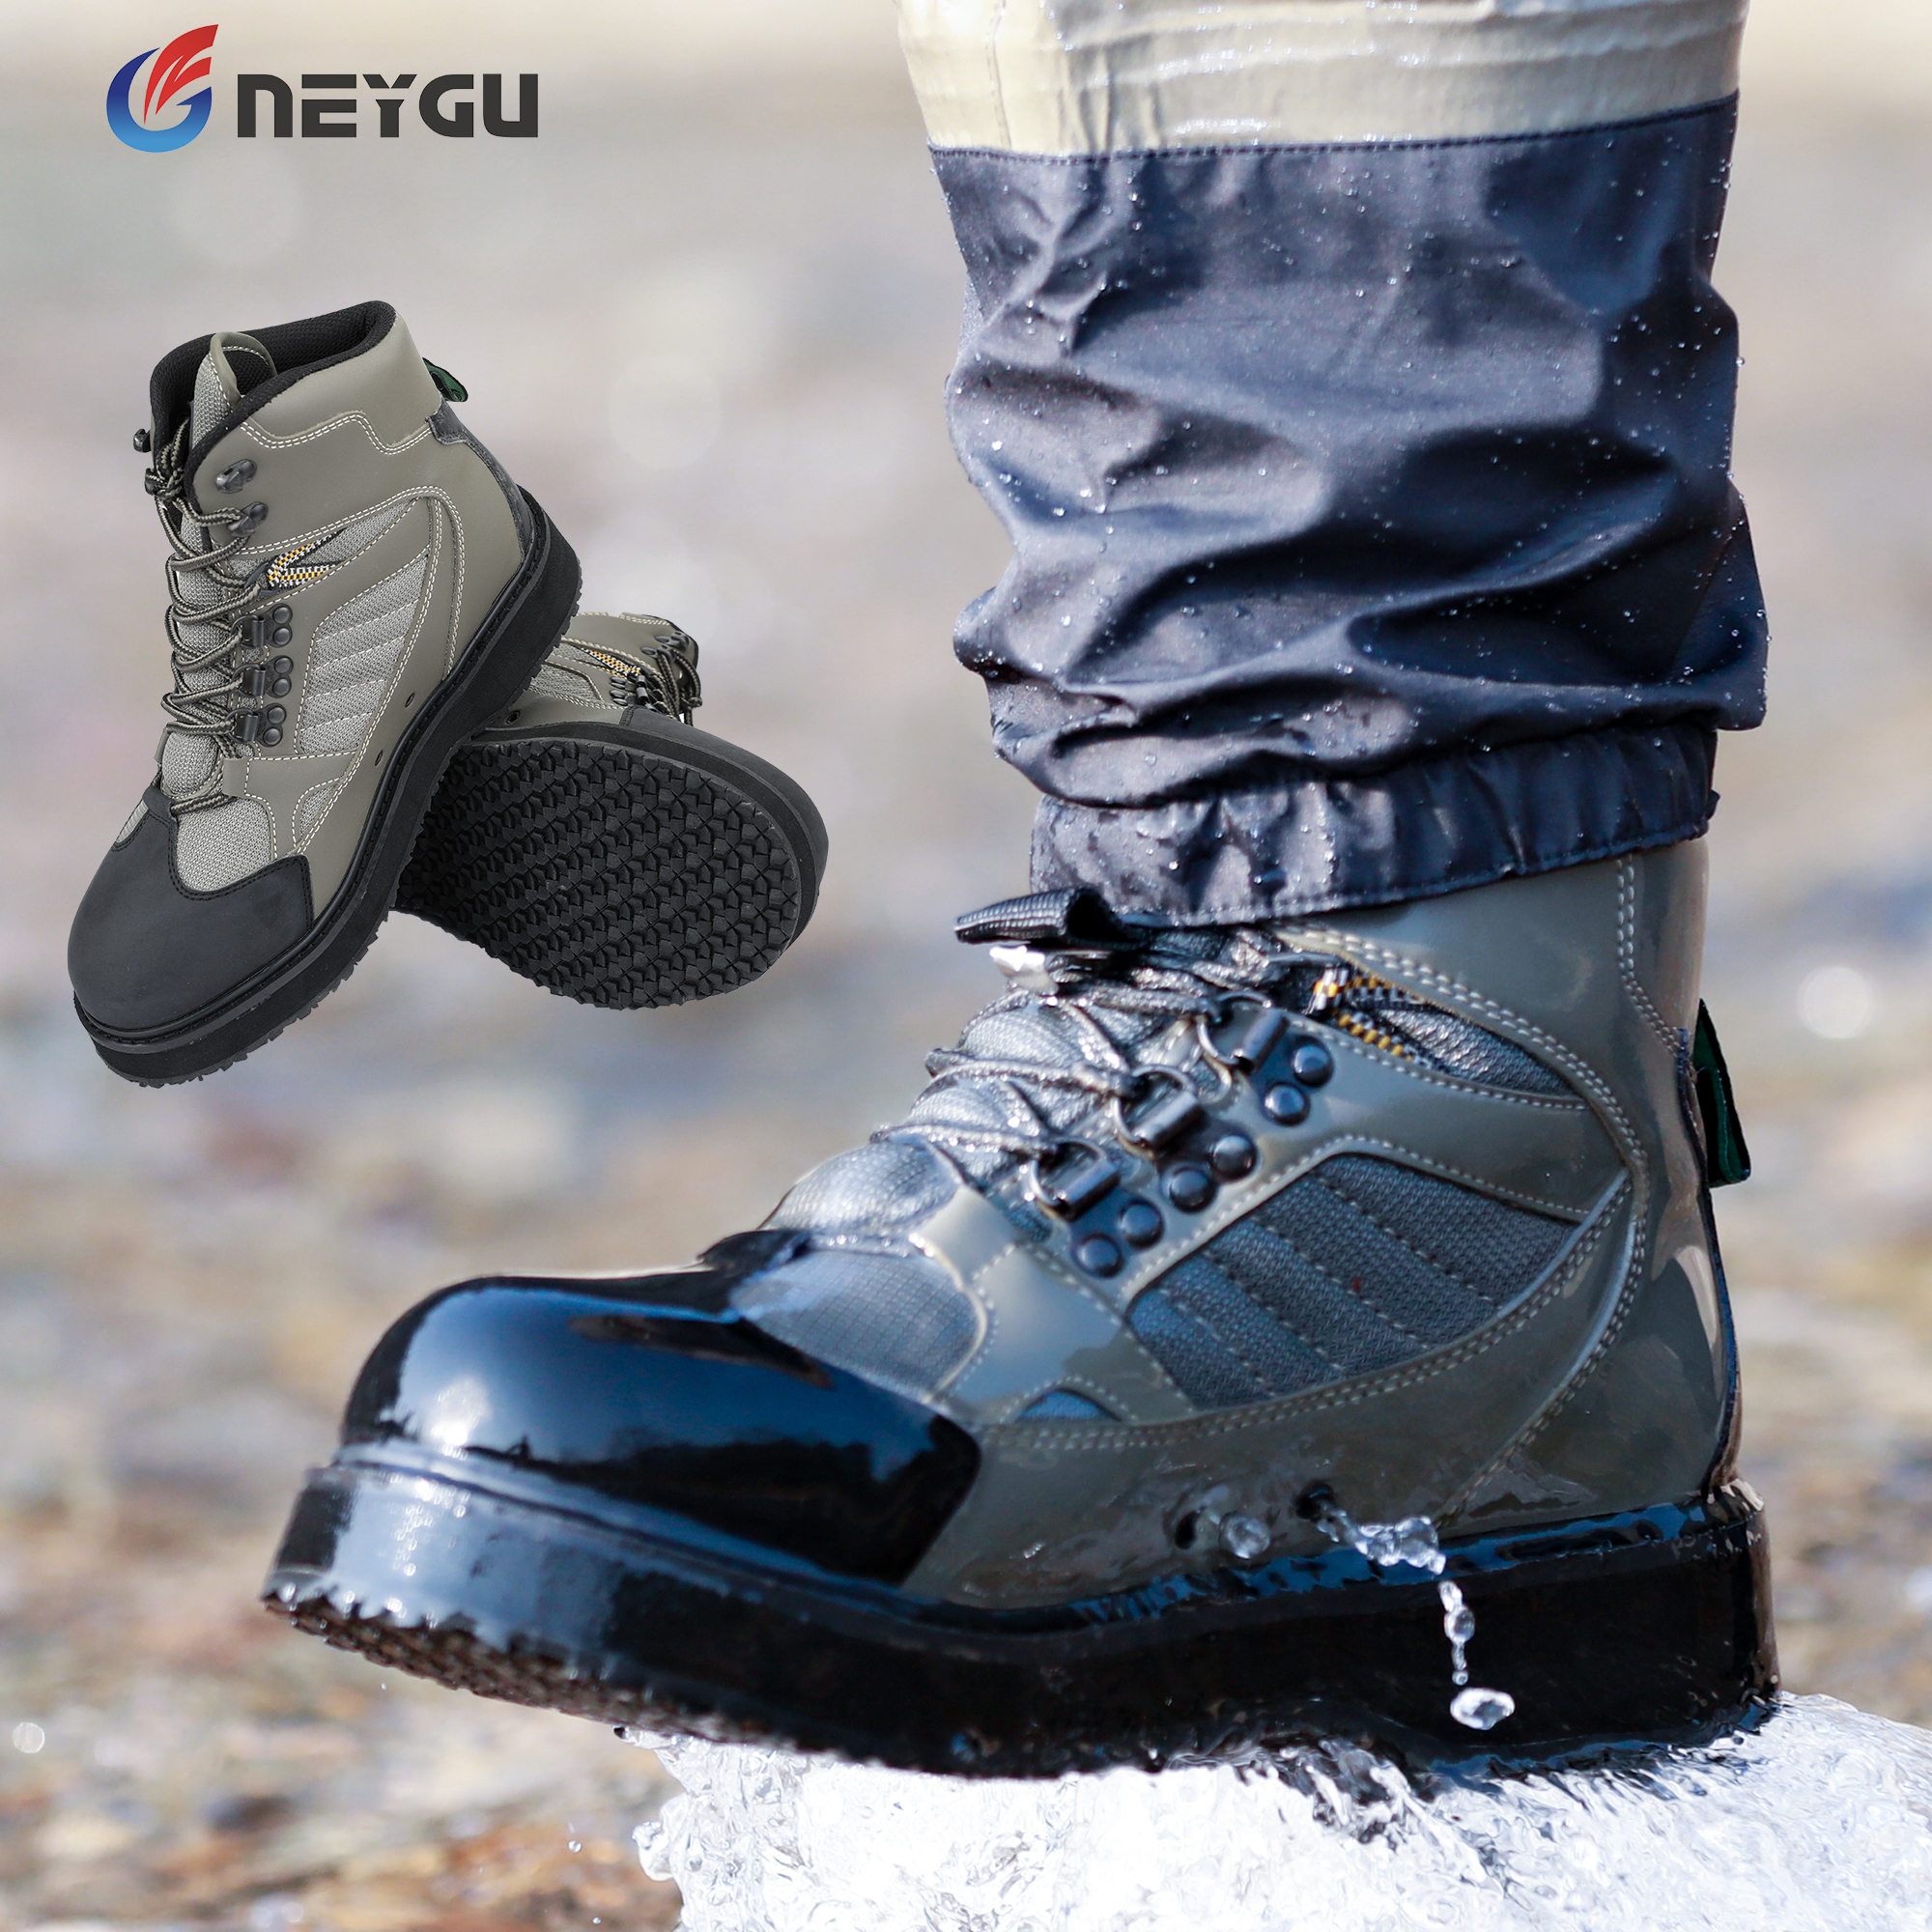 NEYGU outdoor sports shoes for wading dry quickly fly fishing wader boots for man and women